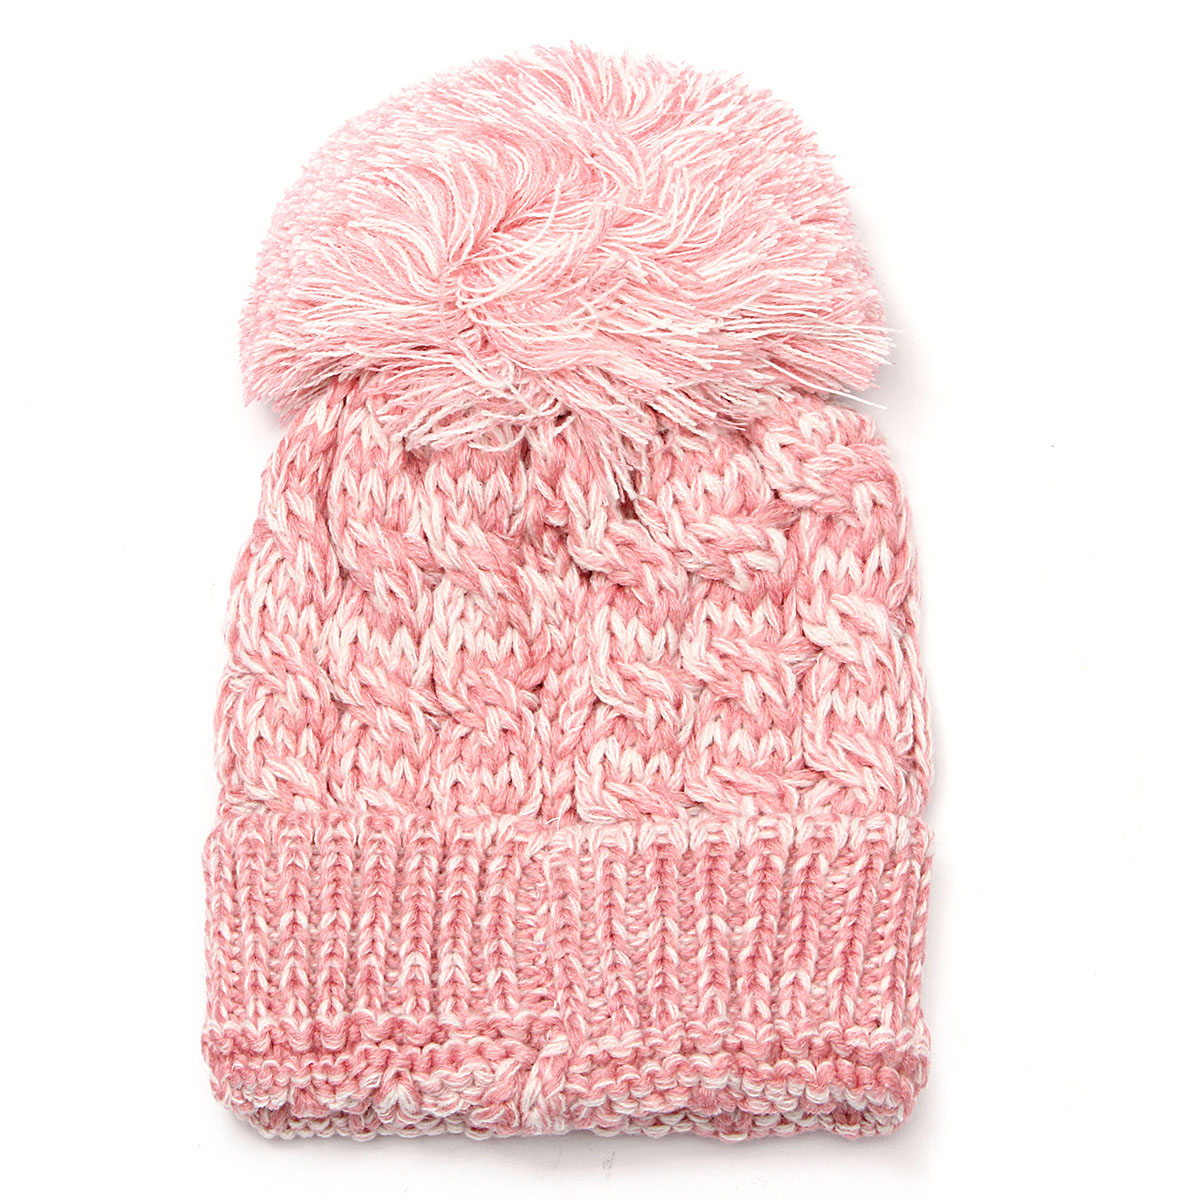 Toddler Children Candy Color Knitting Pom Beret Beanie Hat Cute Knitted Crochet Cap